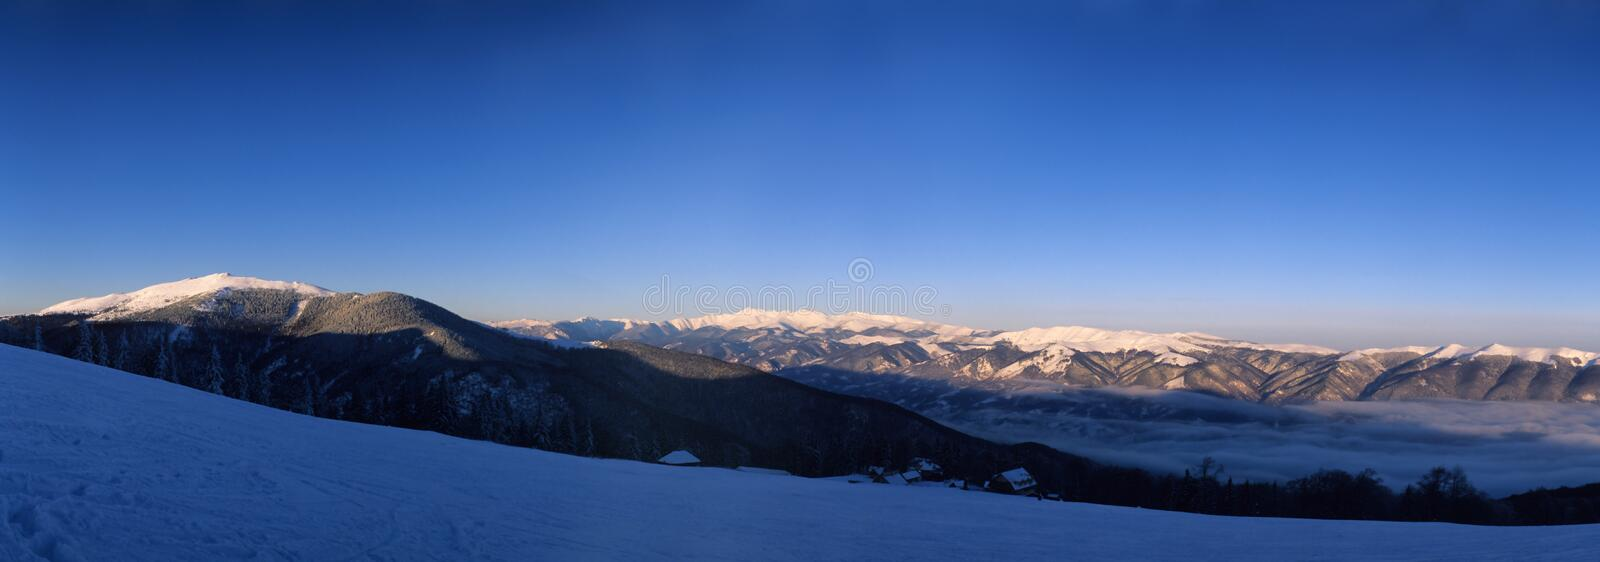 Winter mountains. Valcan Mountains in winter, Southern Carpathians, Romania stock images